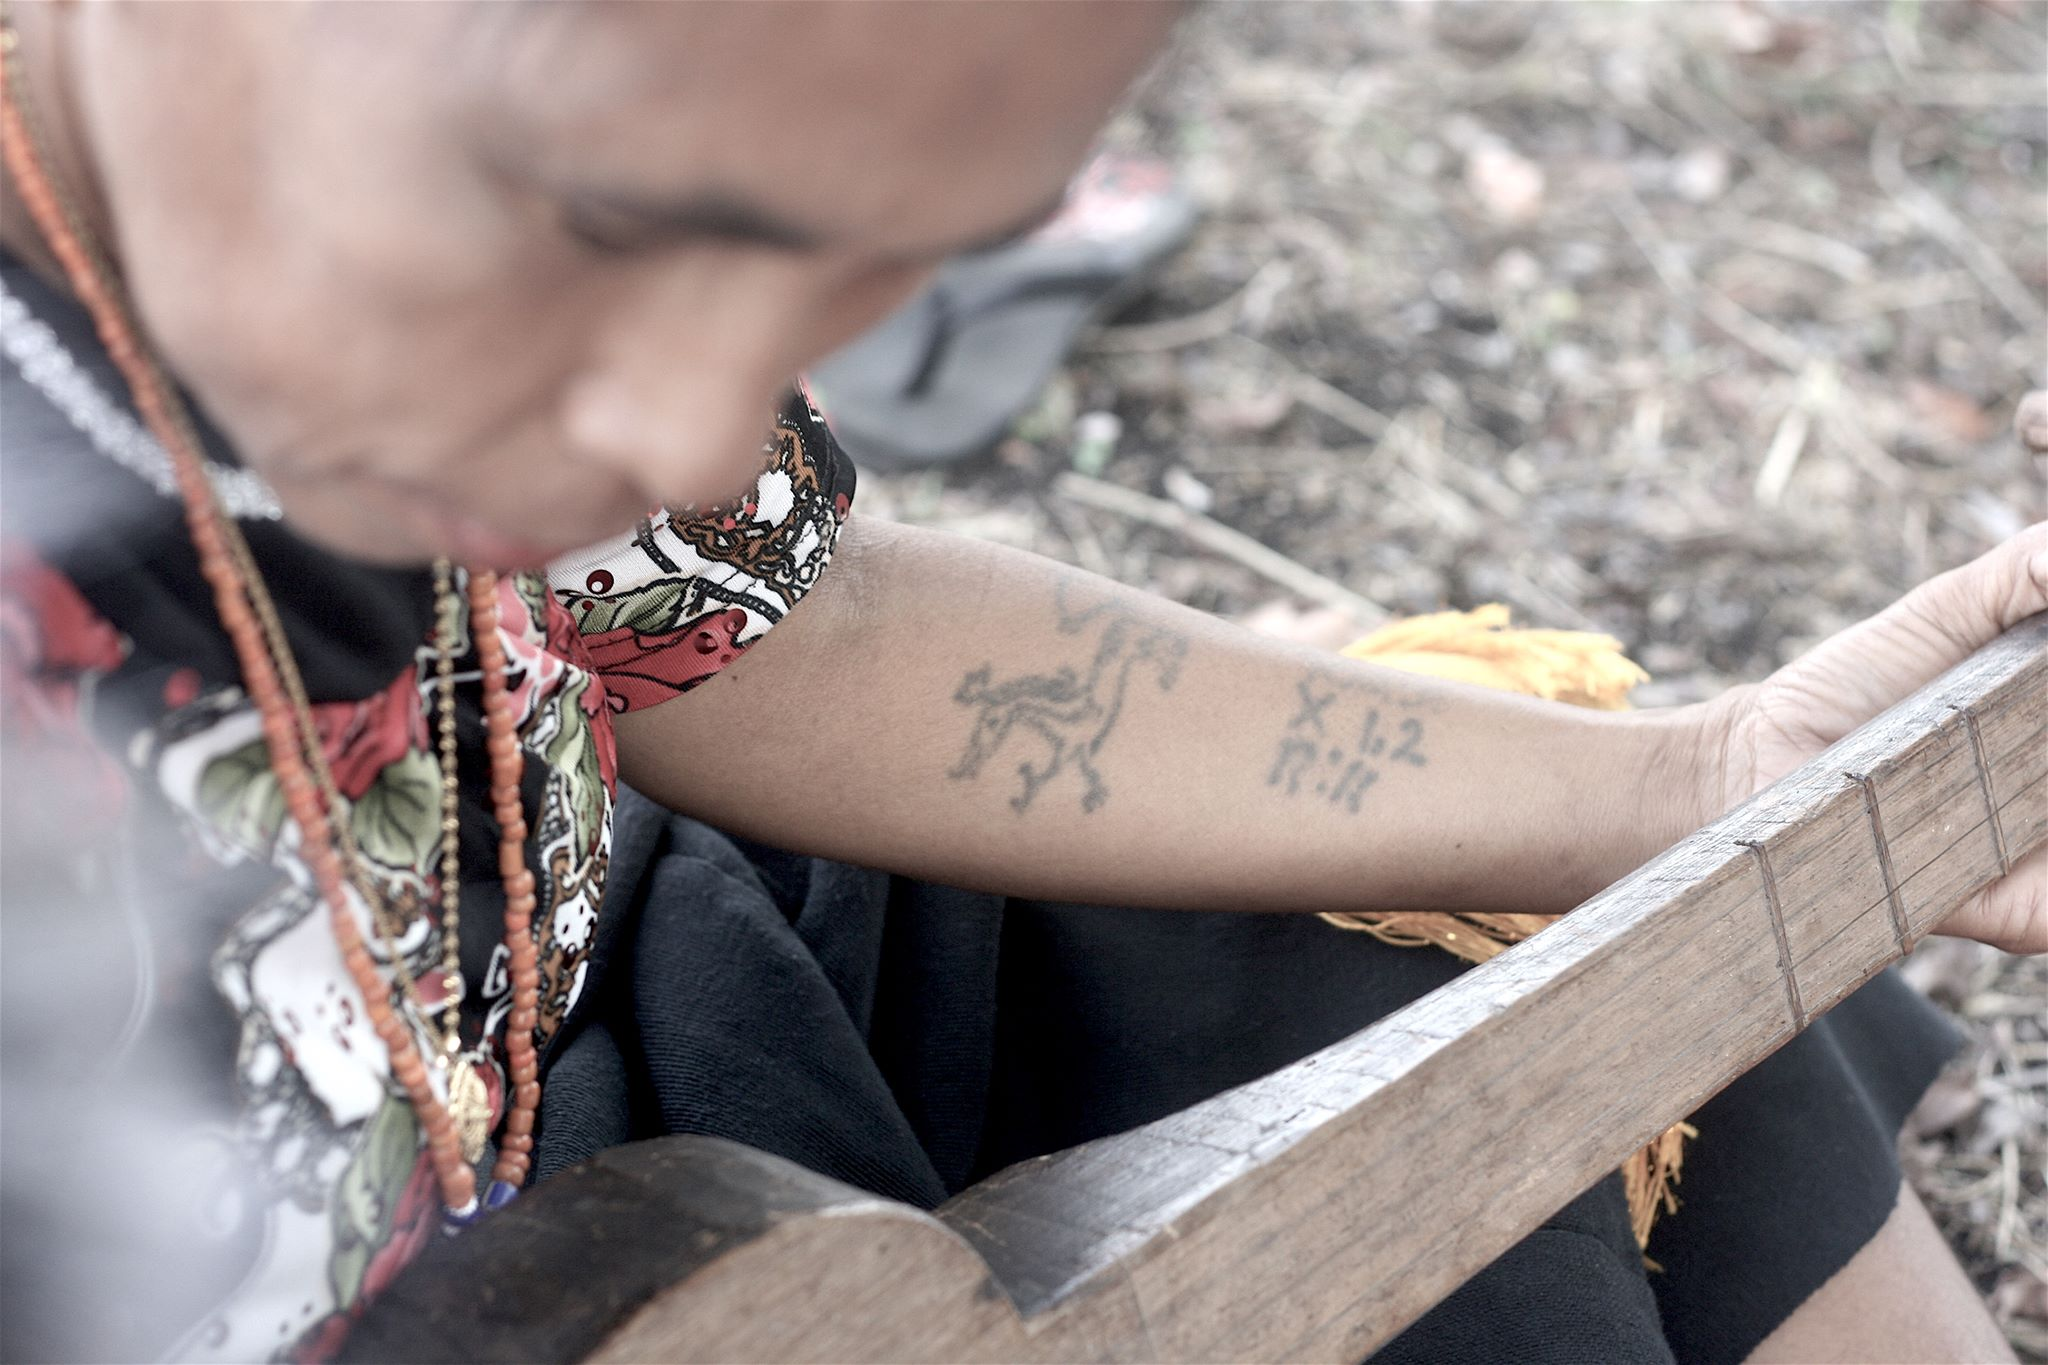 Like many men and women of her generation, Ata Ratu has traditional tattoos depicting  marapu  spirits and mysterious numbers and letters. Photo by Joseph Lamont.